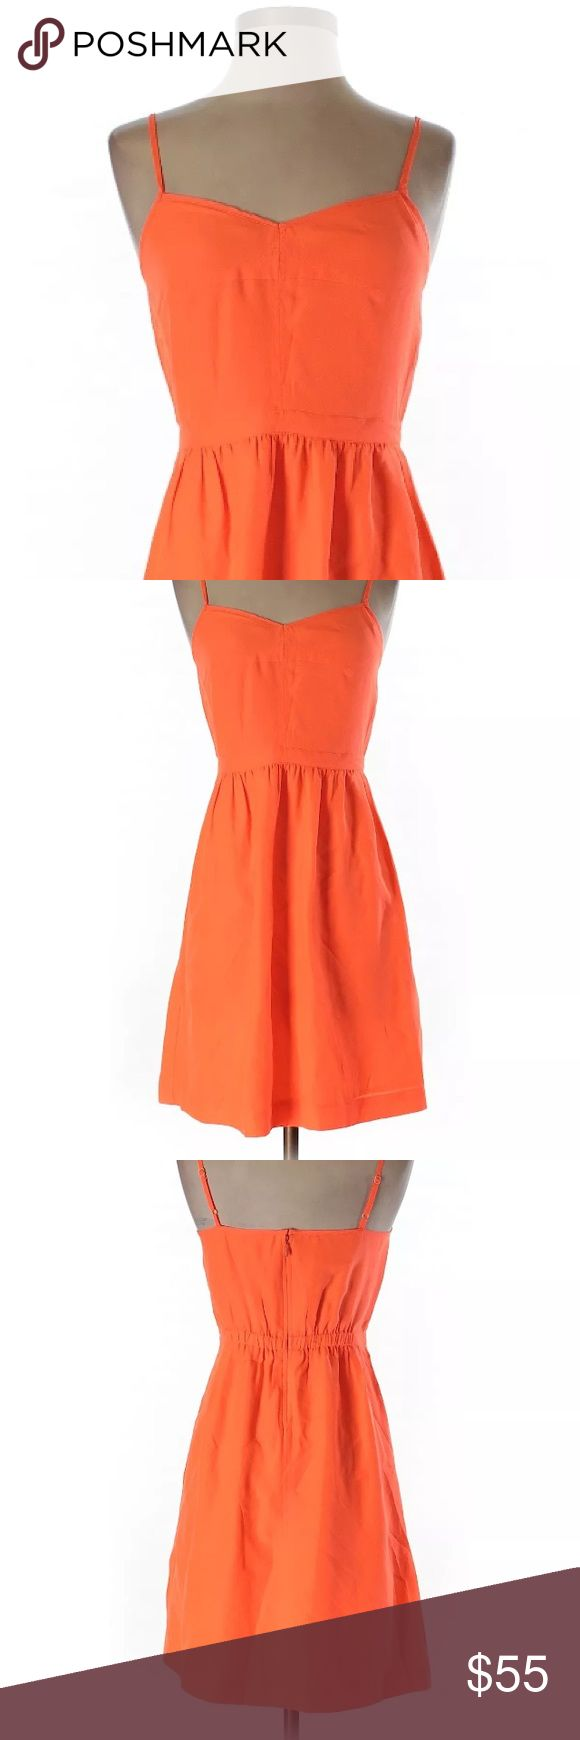 J. Crew Spaghetti Strap Dress in Orange Easy, breezy, throw-on-the go dress from J. Crew in a gorgeous orange color. Fabric is very lightweight an breathable so it's ideal for this Spring and into hot summer months. Perfect to pair with your favorite pot of flats for a casual look, or easy to dress up with heels and a statement necklace for a formal formal occasion. NWT!! J. Crew Dresses